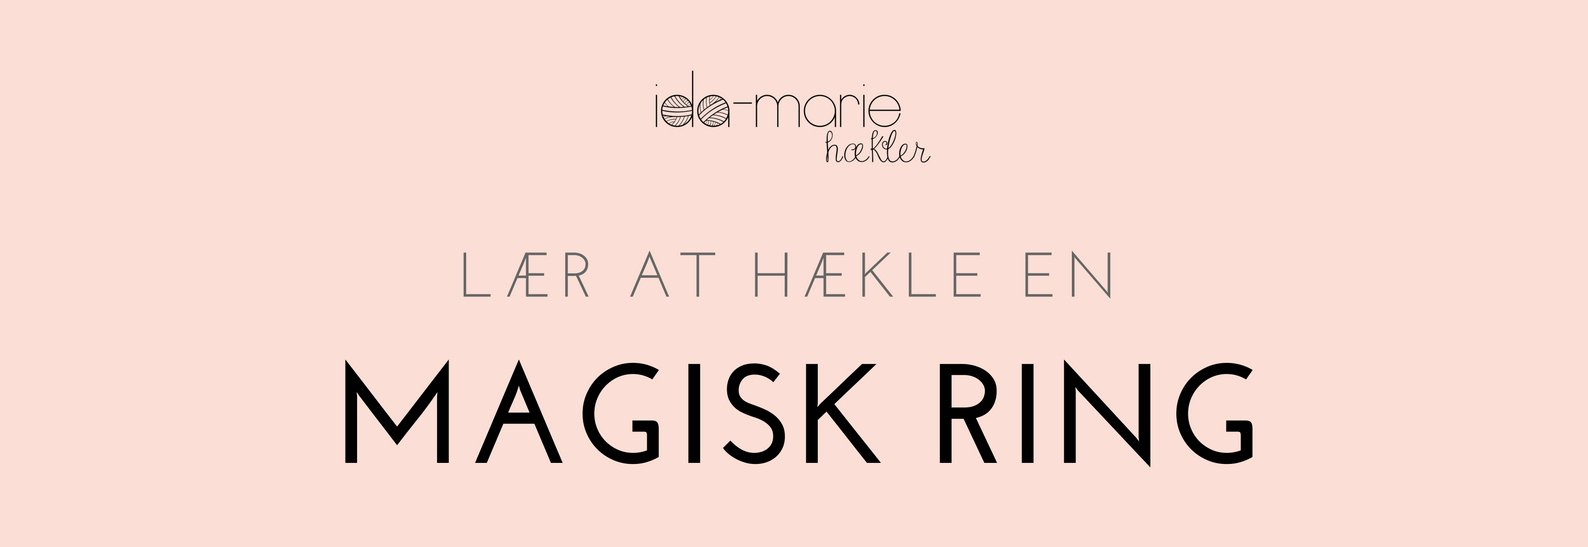 Lær at hækle en magisk ring